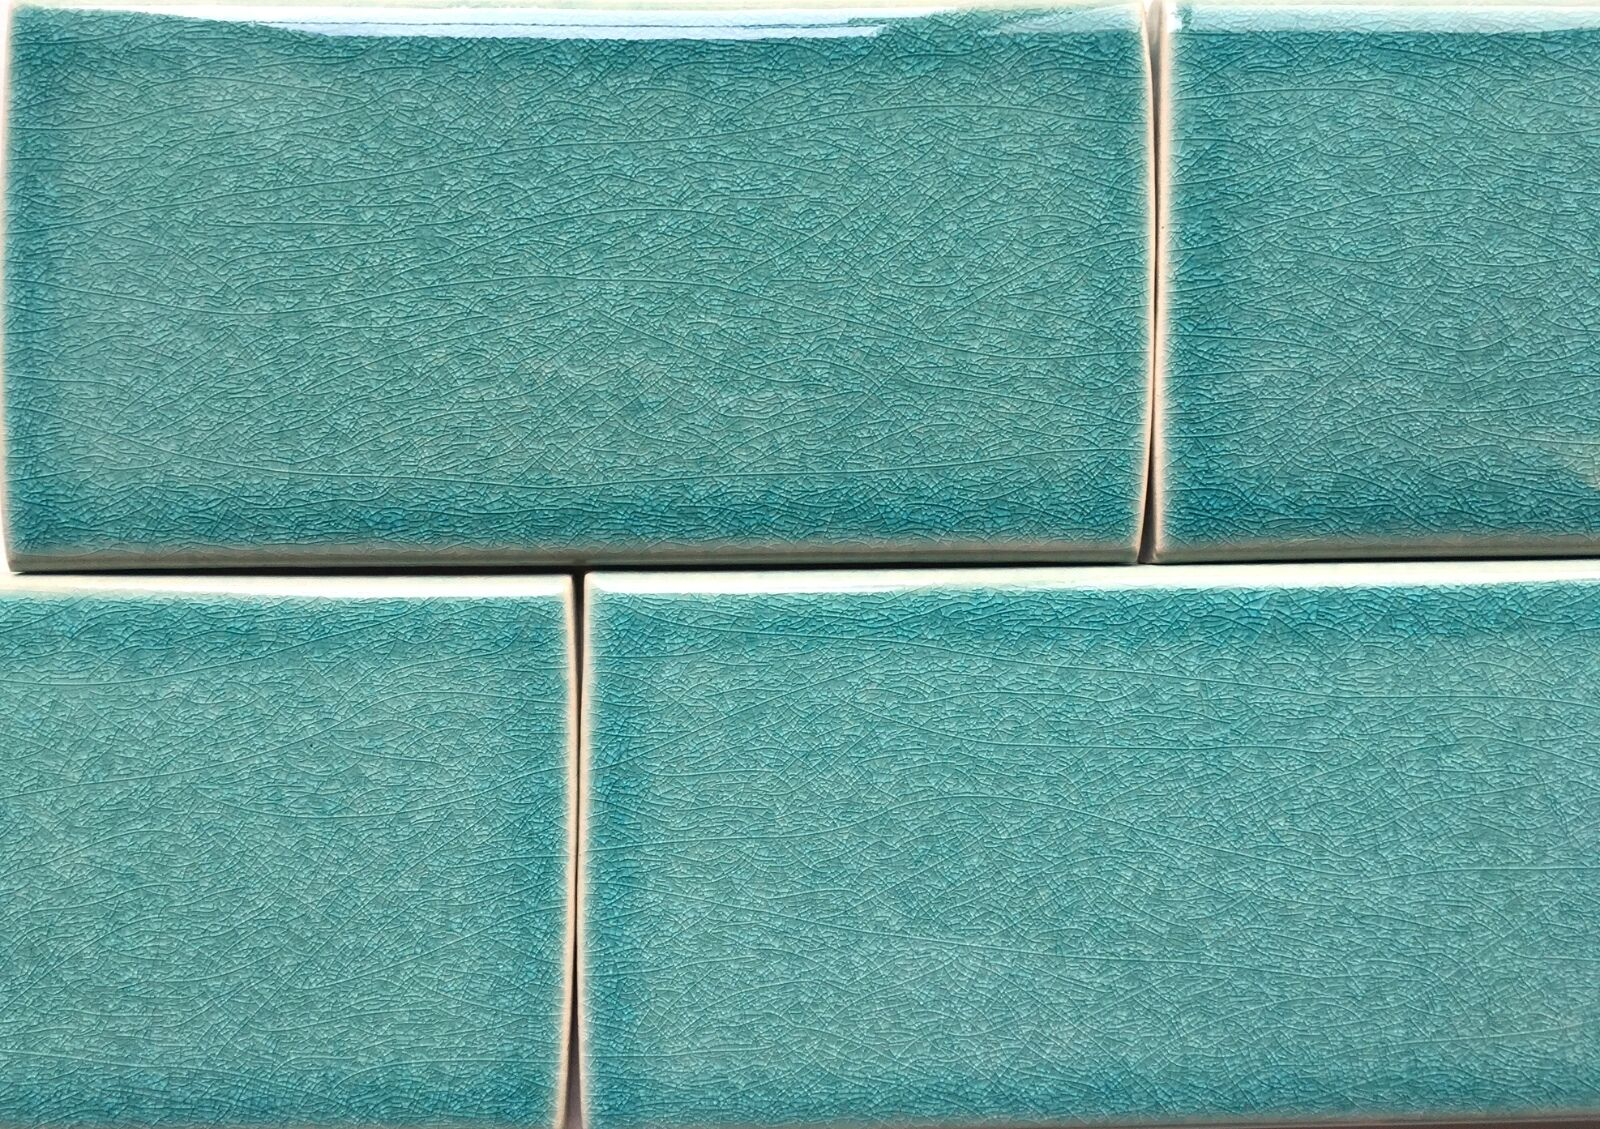 3x6 turquoise handmade glossy finish crackled ceramic tile wall resntentobalflowflowcomponentncel dailygadgetfo Image collections